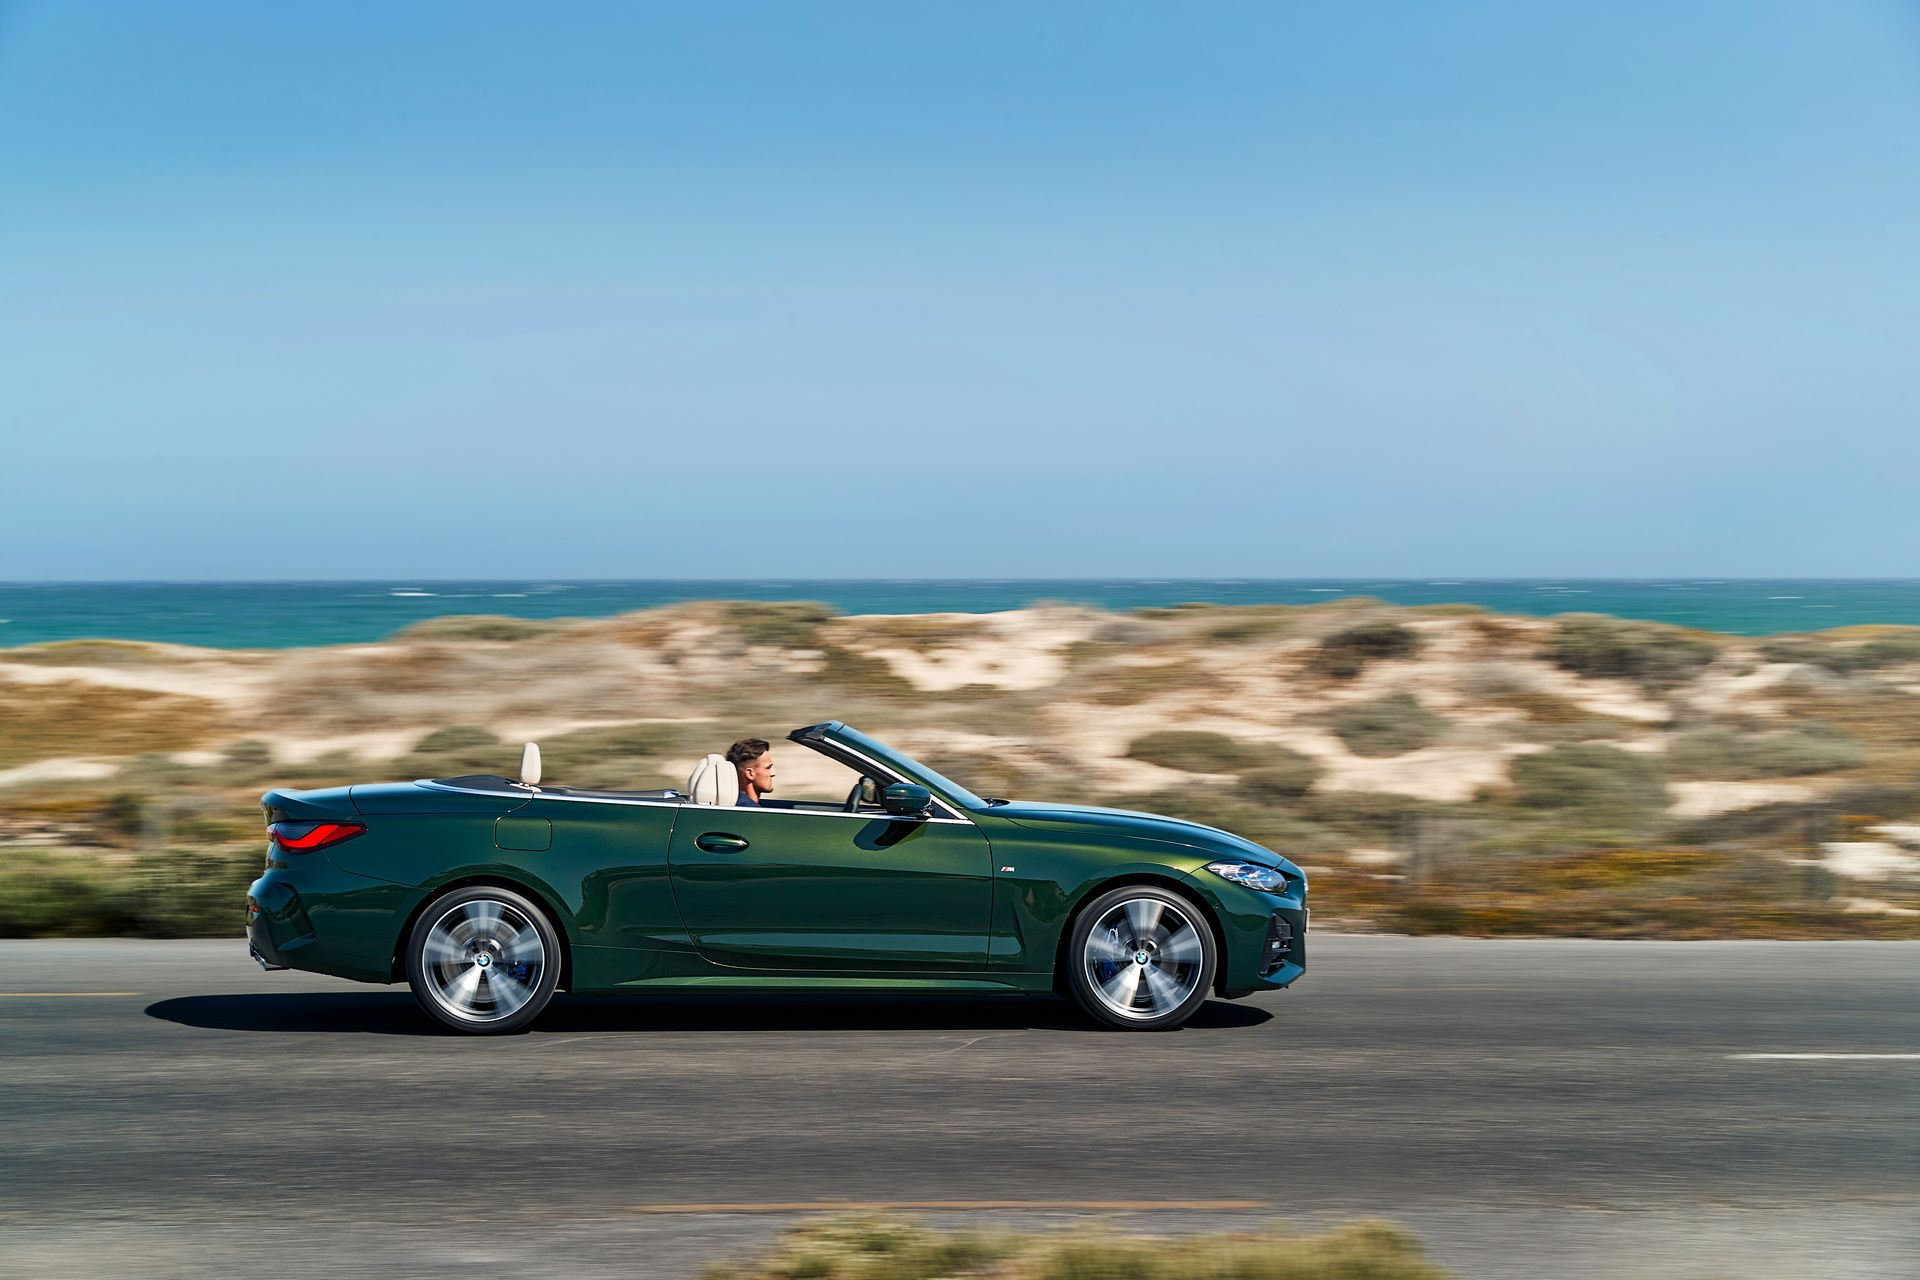 BMW-4-Series-Convertible-2021-31